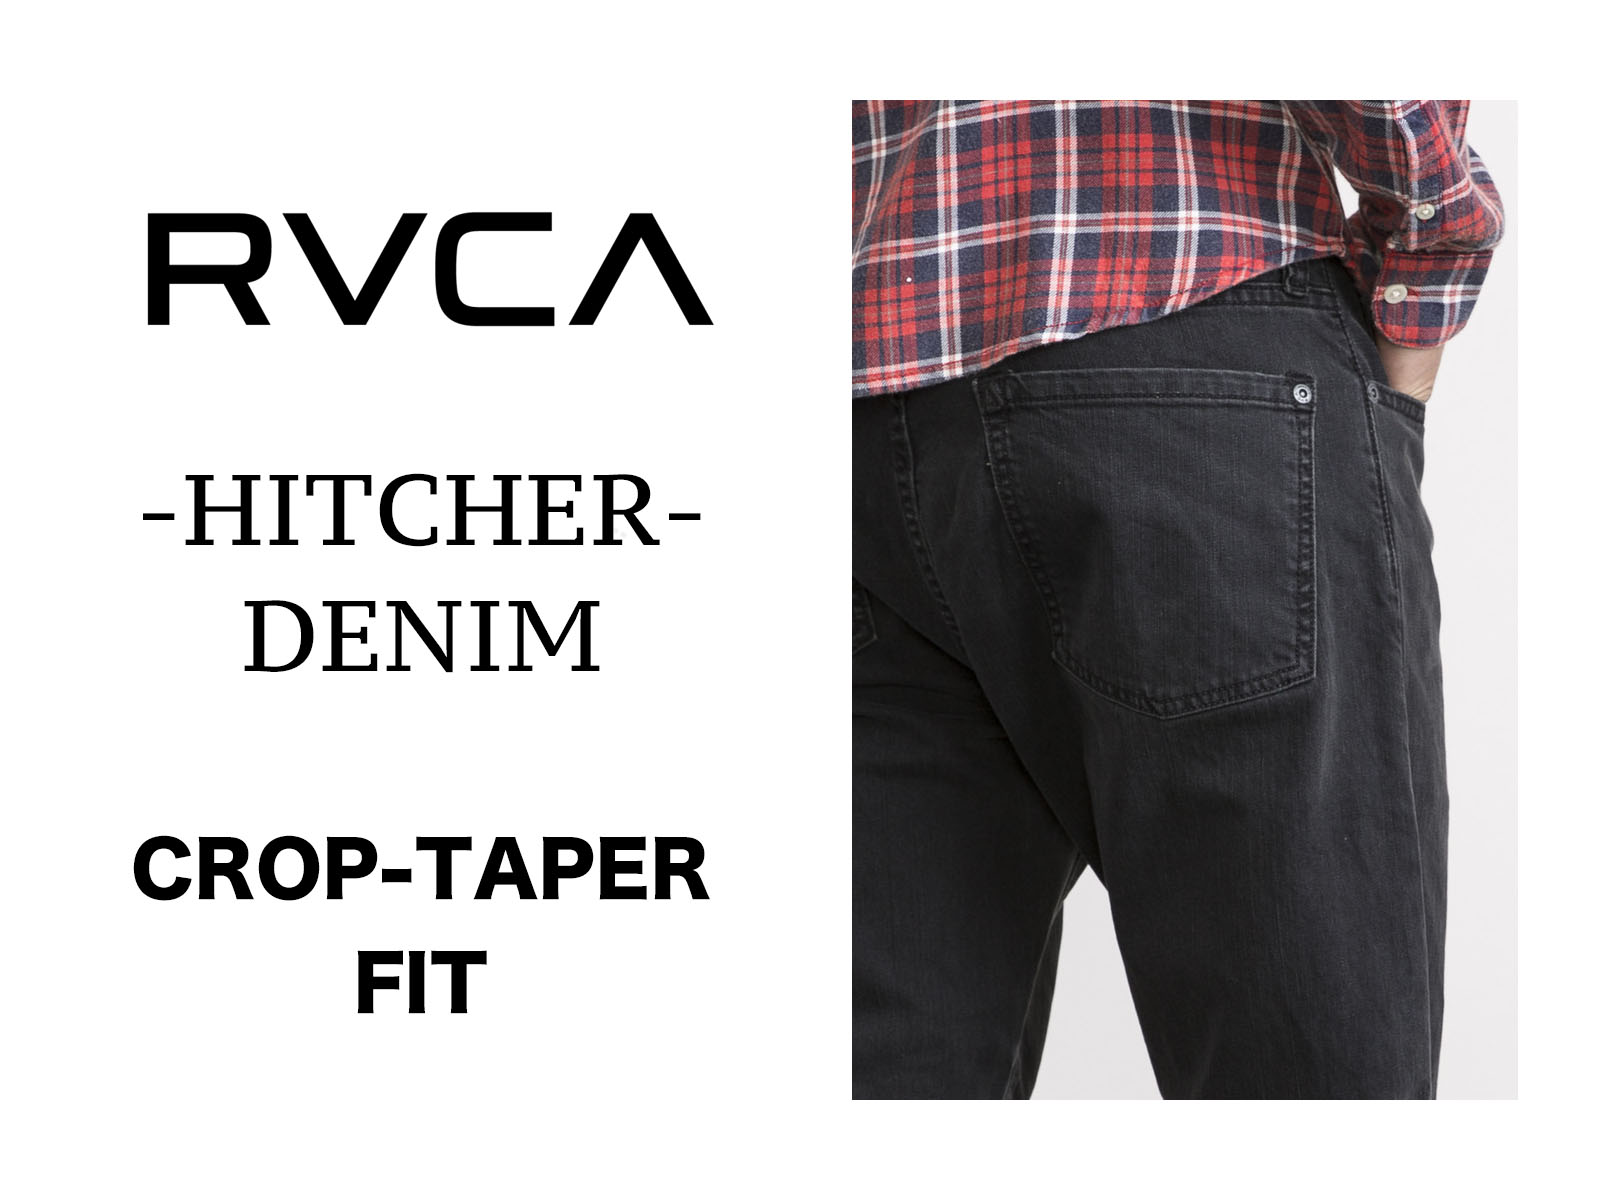 クローズアップ: RVCA – HITCHER DENIM SUMMER 2017